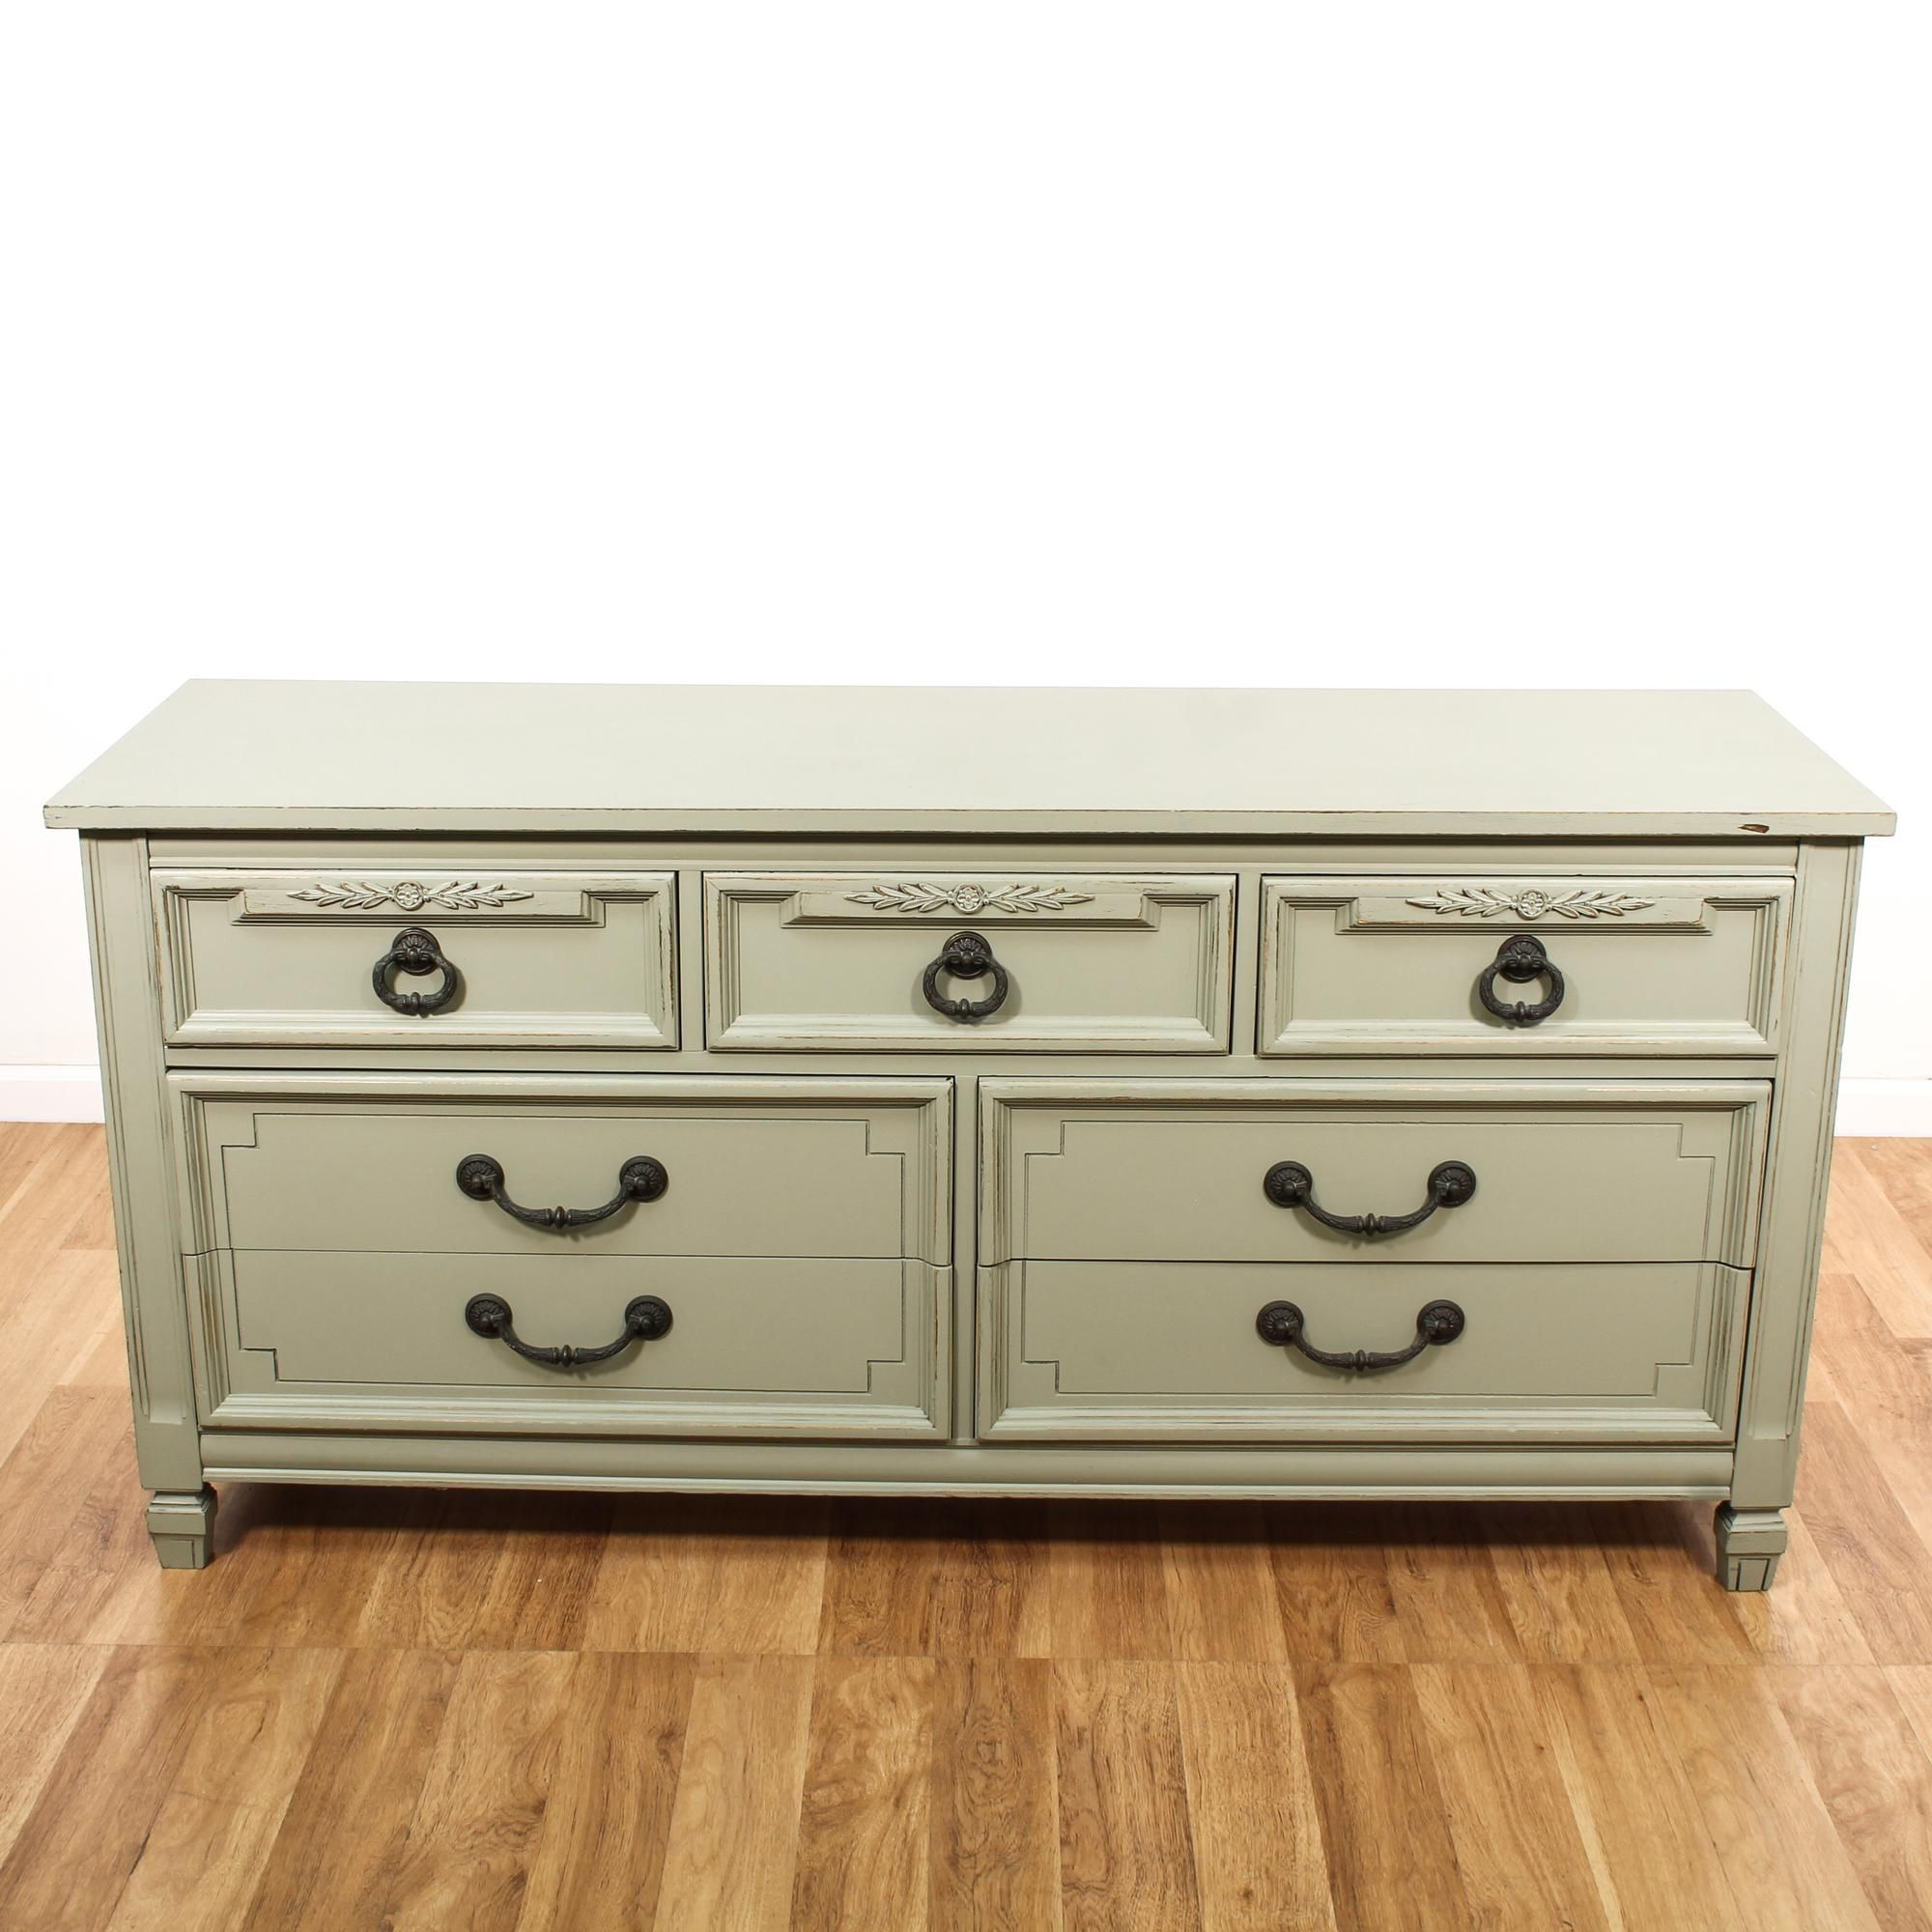 This Cottage Chic Dresser Is Featured In A Solid Wood With A Light Sage Green Paint Finish This Long Dresser Has 7 Green Dresser Cottage Chic Sage Green Paint [ 2000 x 2000 Pixel ]